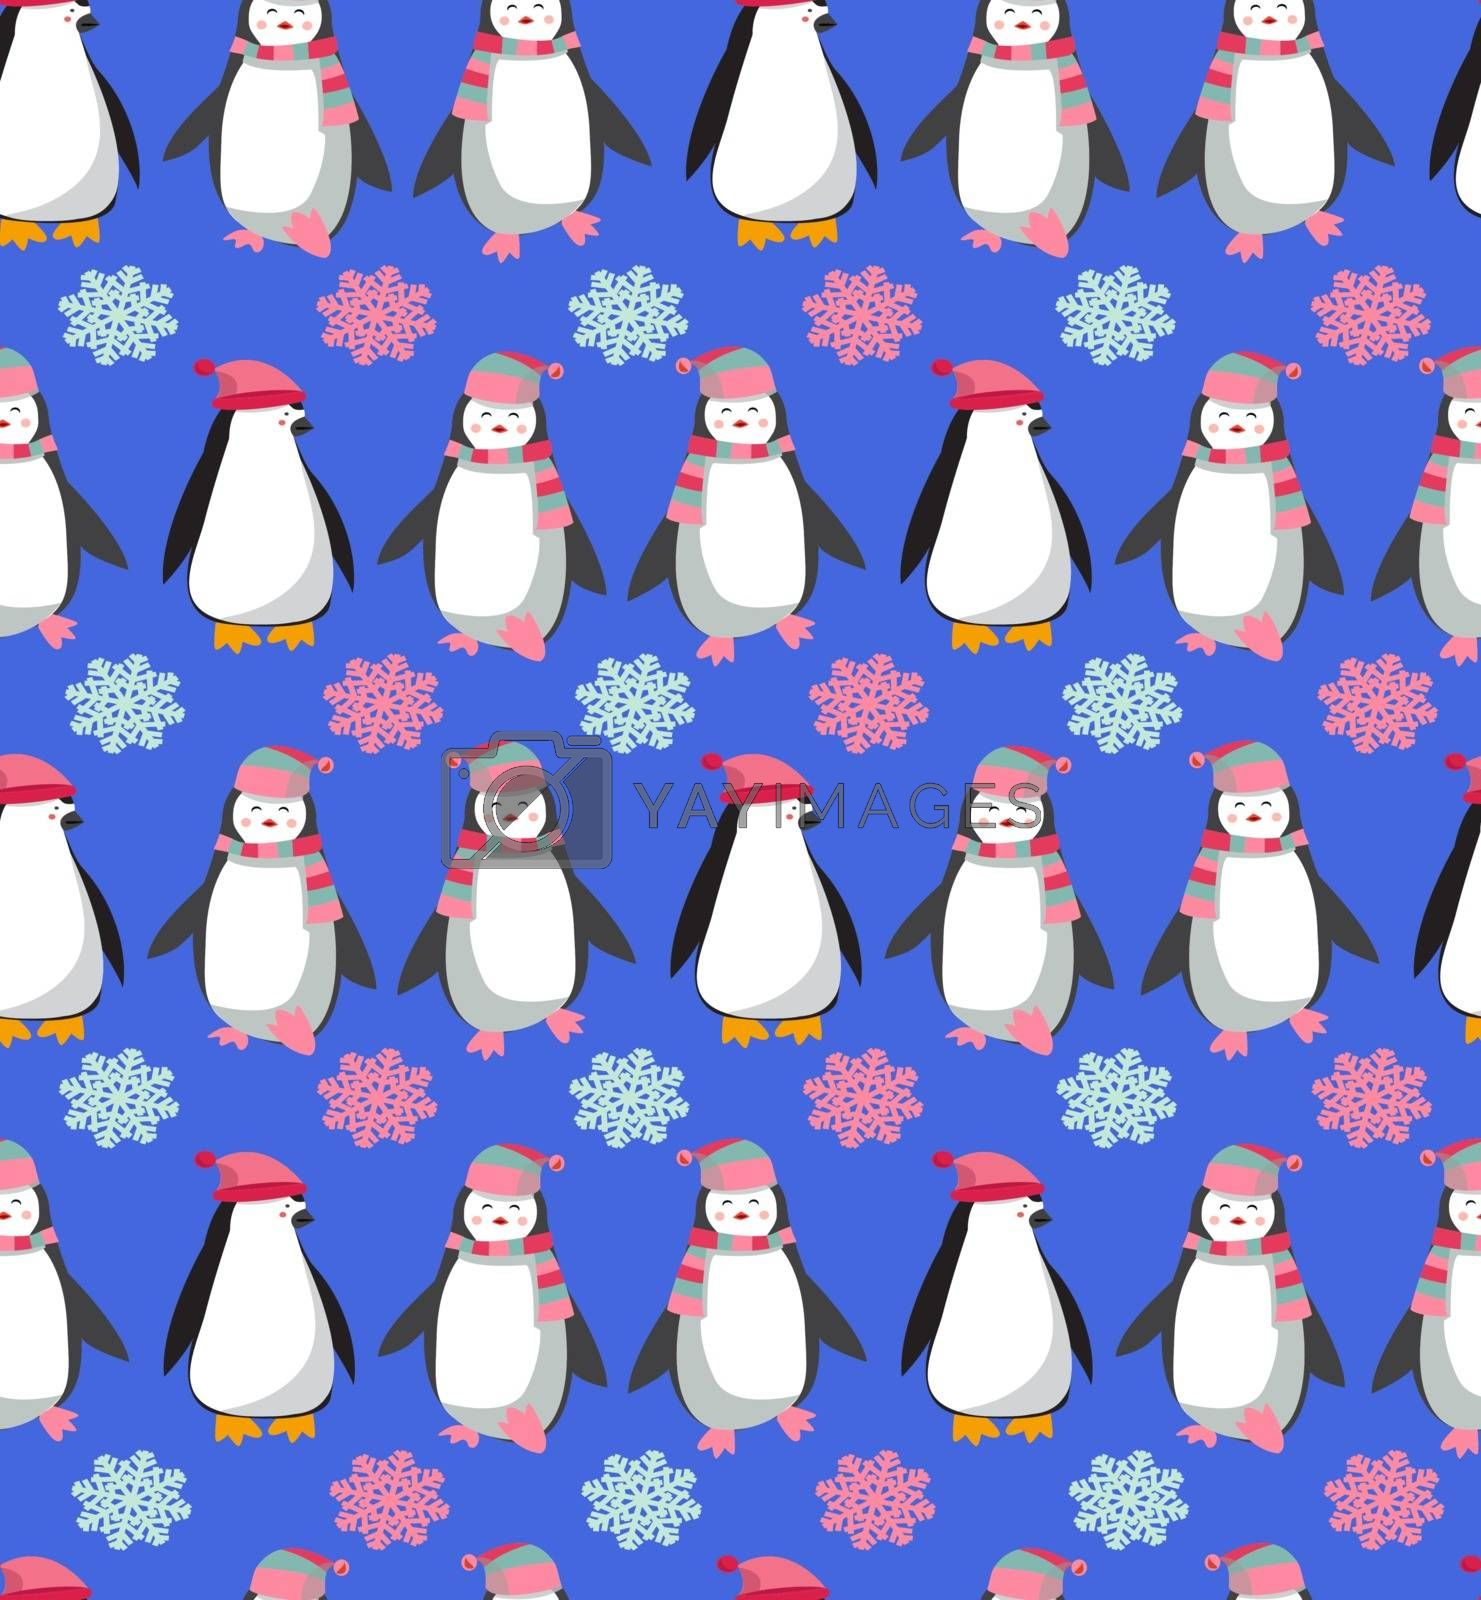 vector seamless pattern with cute penguins character. christmas background with Polar penguins and snowflakes illustration.